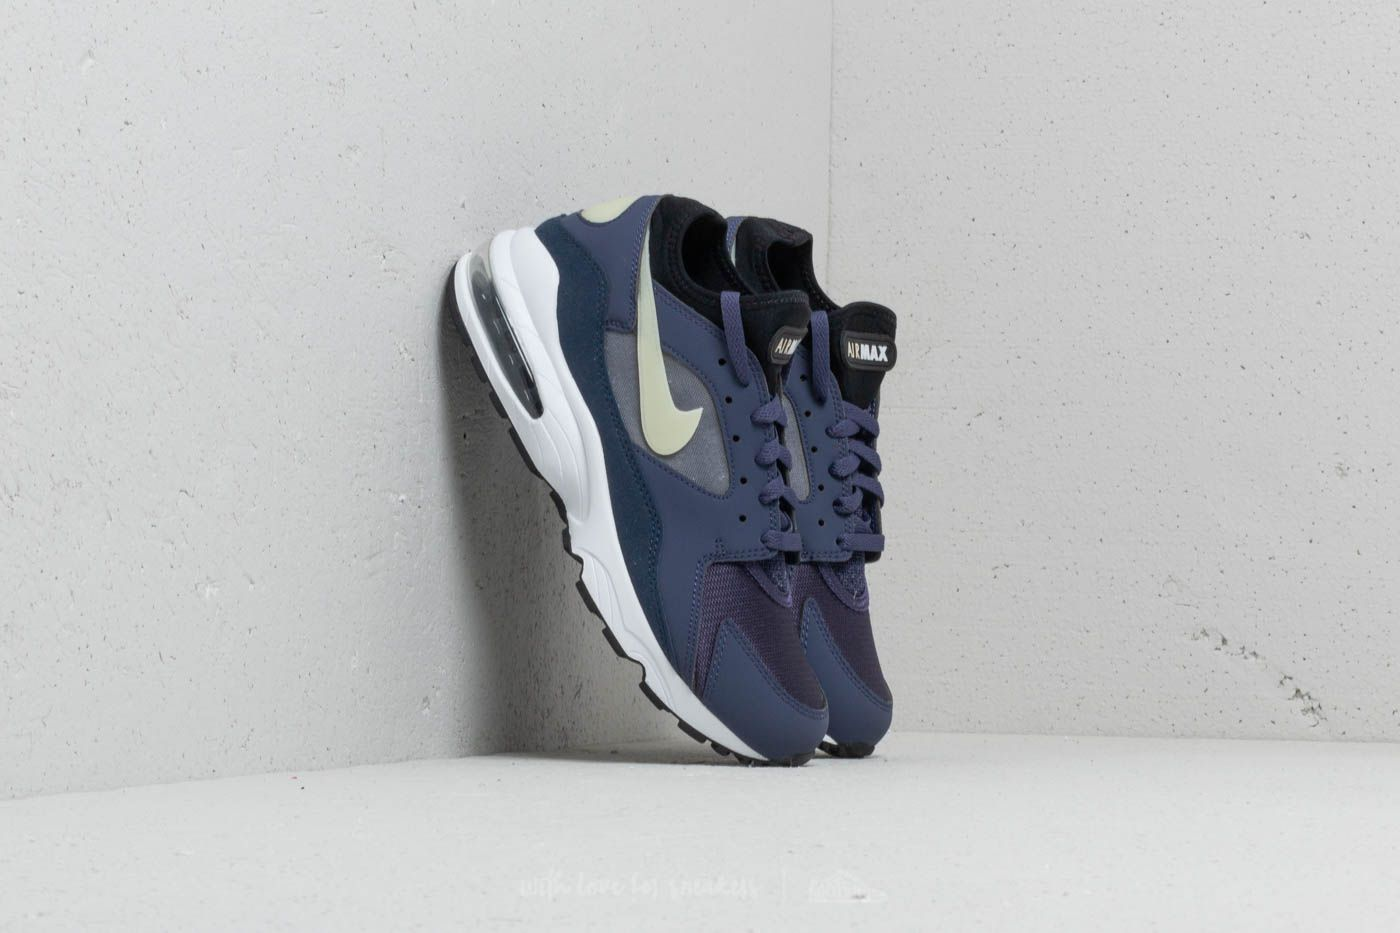 d5a6779f Nike Air Max 93 Neutral Indigo/ Obsidian-Fossil at a great price 100 €